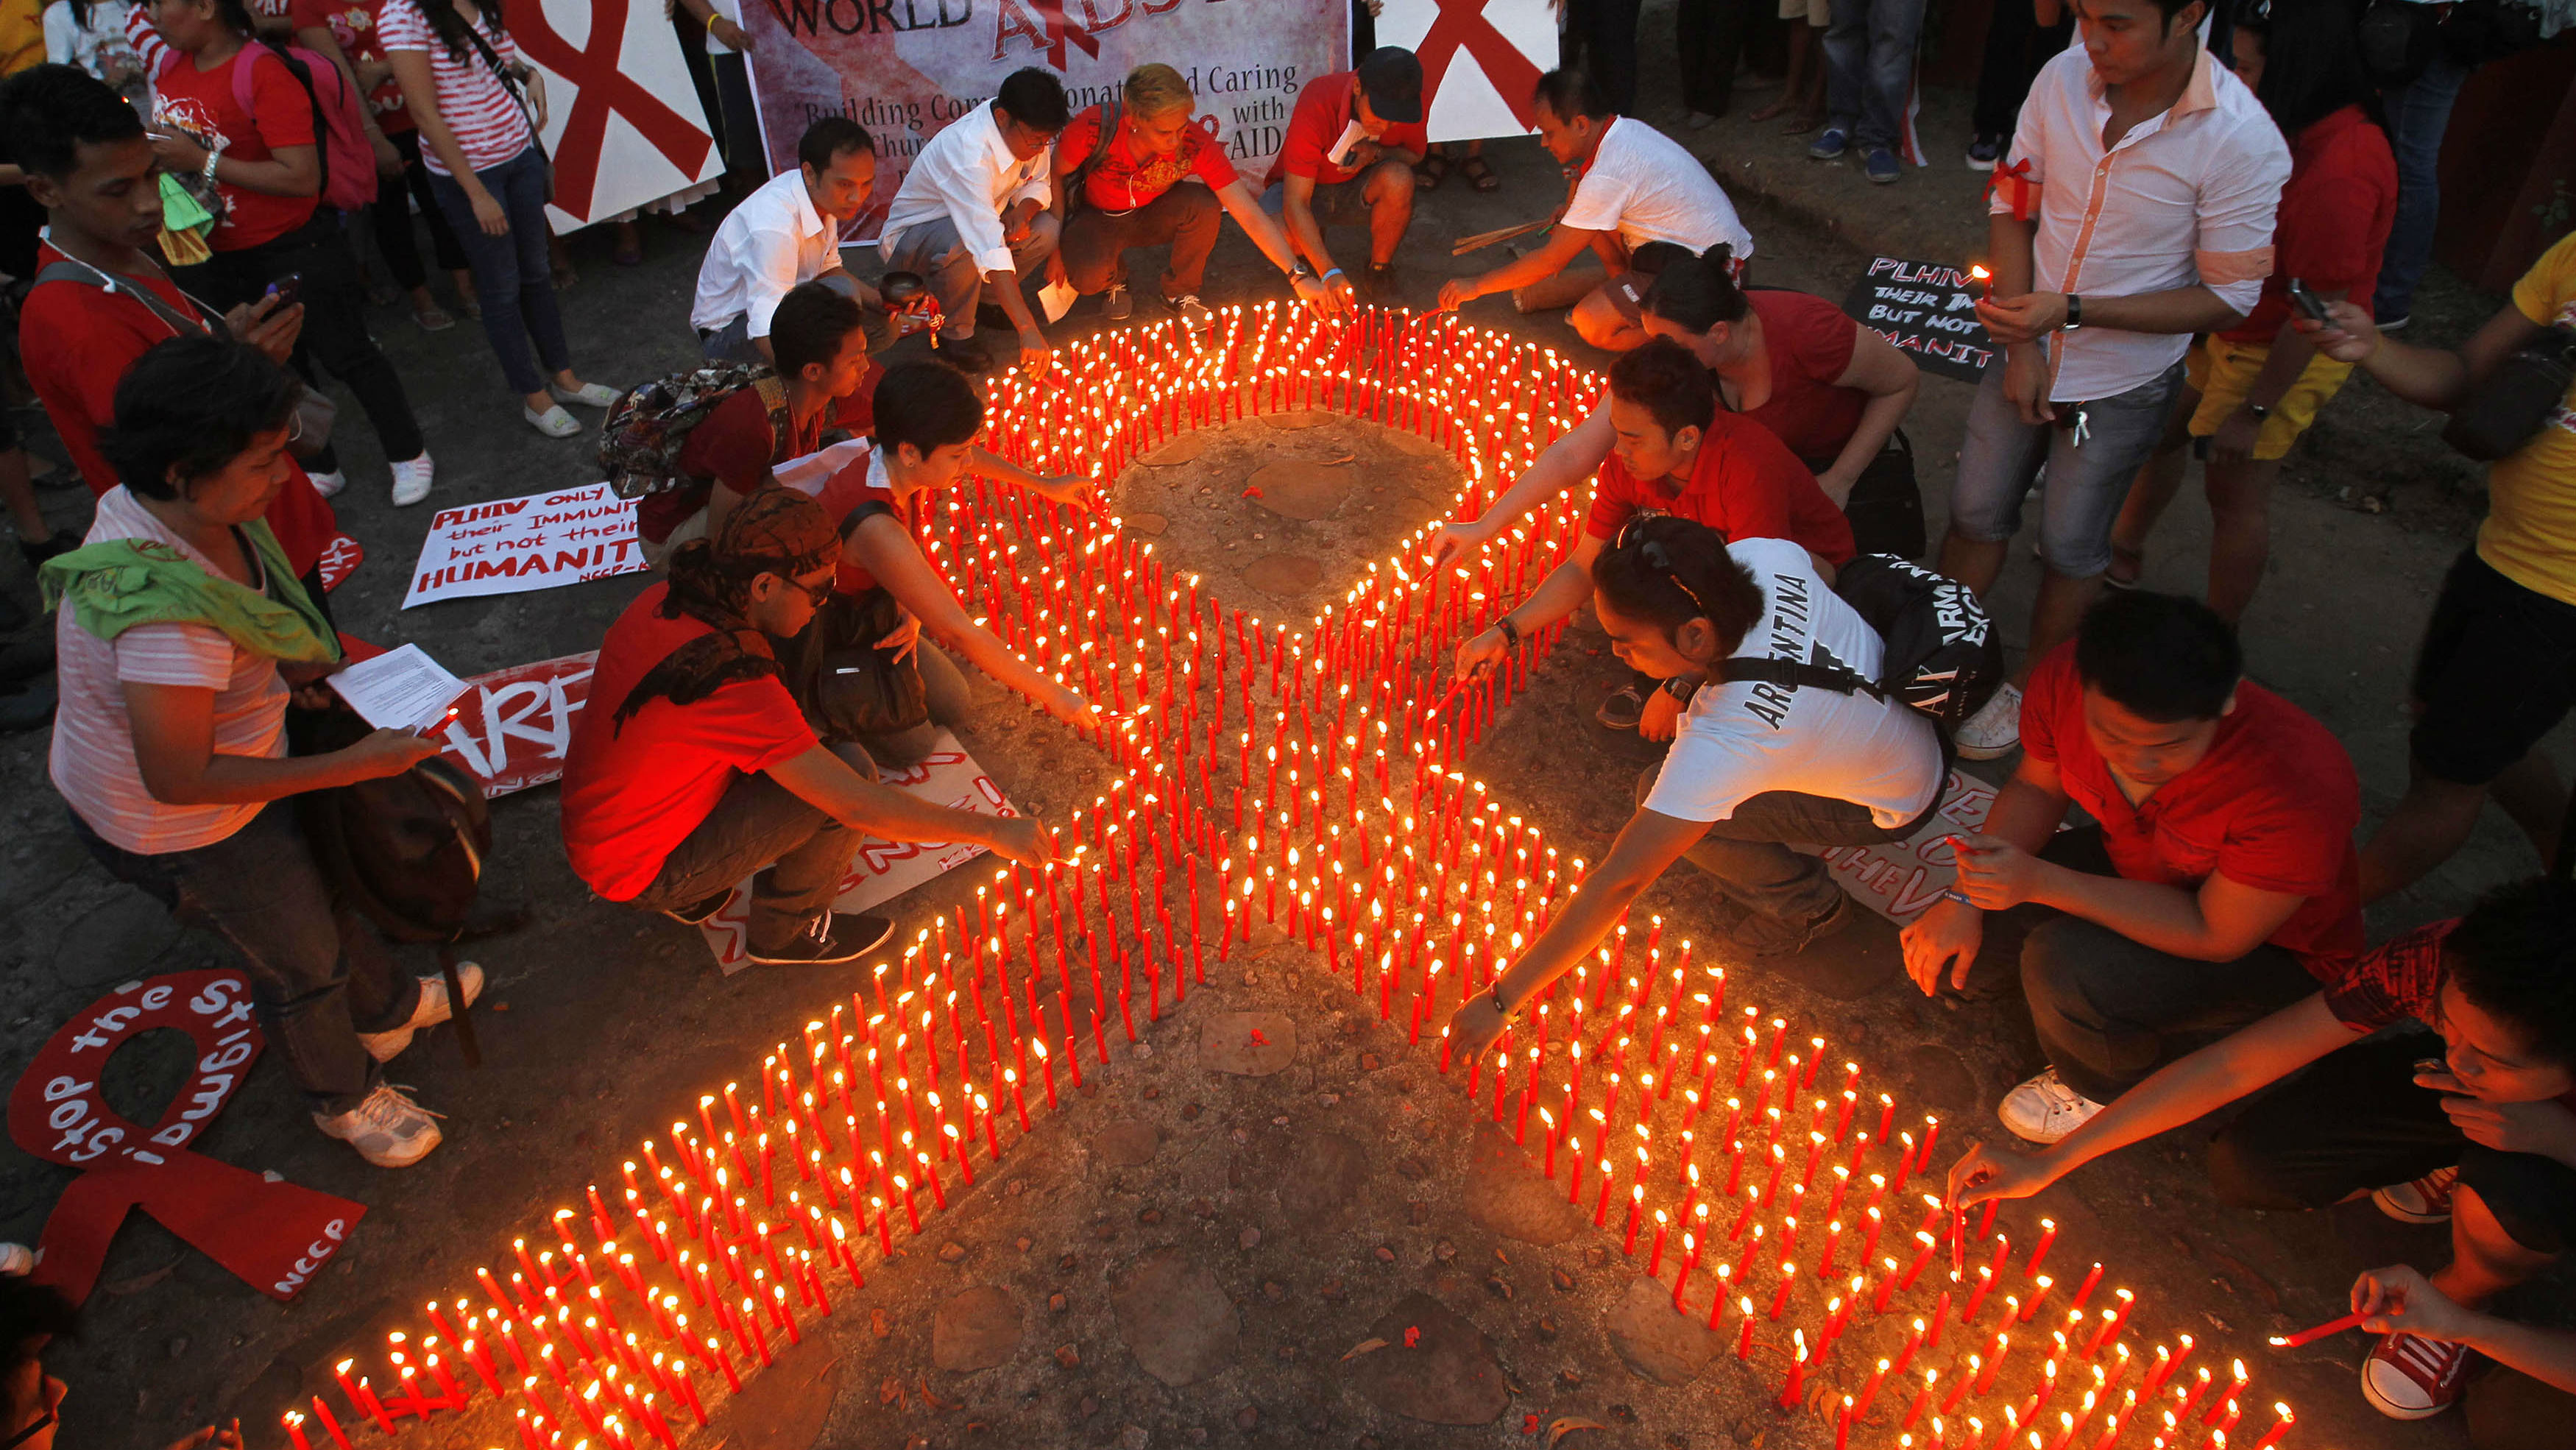 Supporters of people living with HIV and AIDS light candles to form a ribbon, to mark World Aids Day at Heroes Shrine in Quezon City, Metro Manila December 1, 2012. Around 100 Filipinos joined a rally on Saturday to mark World Aids Day and express their solidarity with HIV/AIDS survivors. The Philippines is one of nine countries where the number of HIV infections were increasing by more than 25 percent, the United Nations said, and it is at risk of missing one of its millennium development goals, which is stopping the spread of HIV/AIDS.